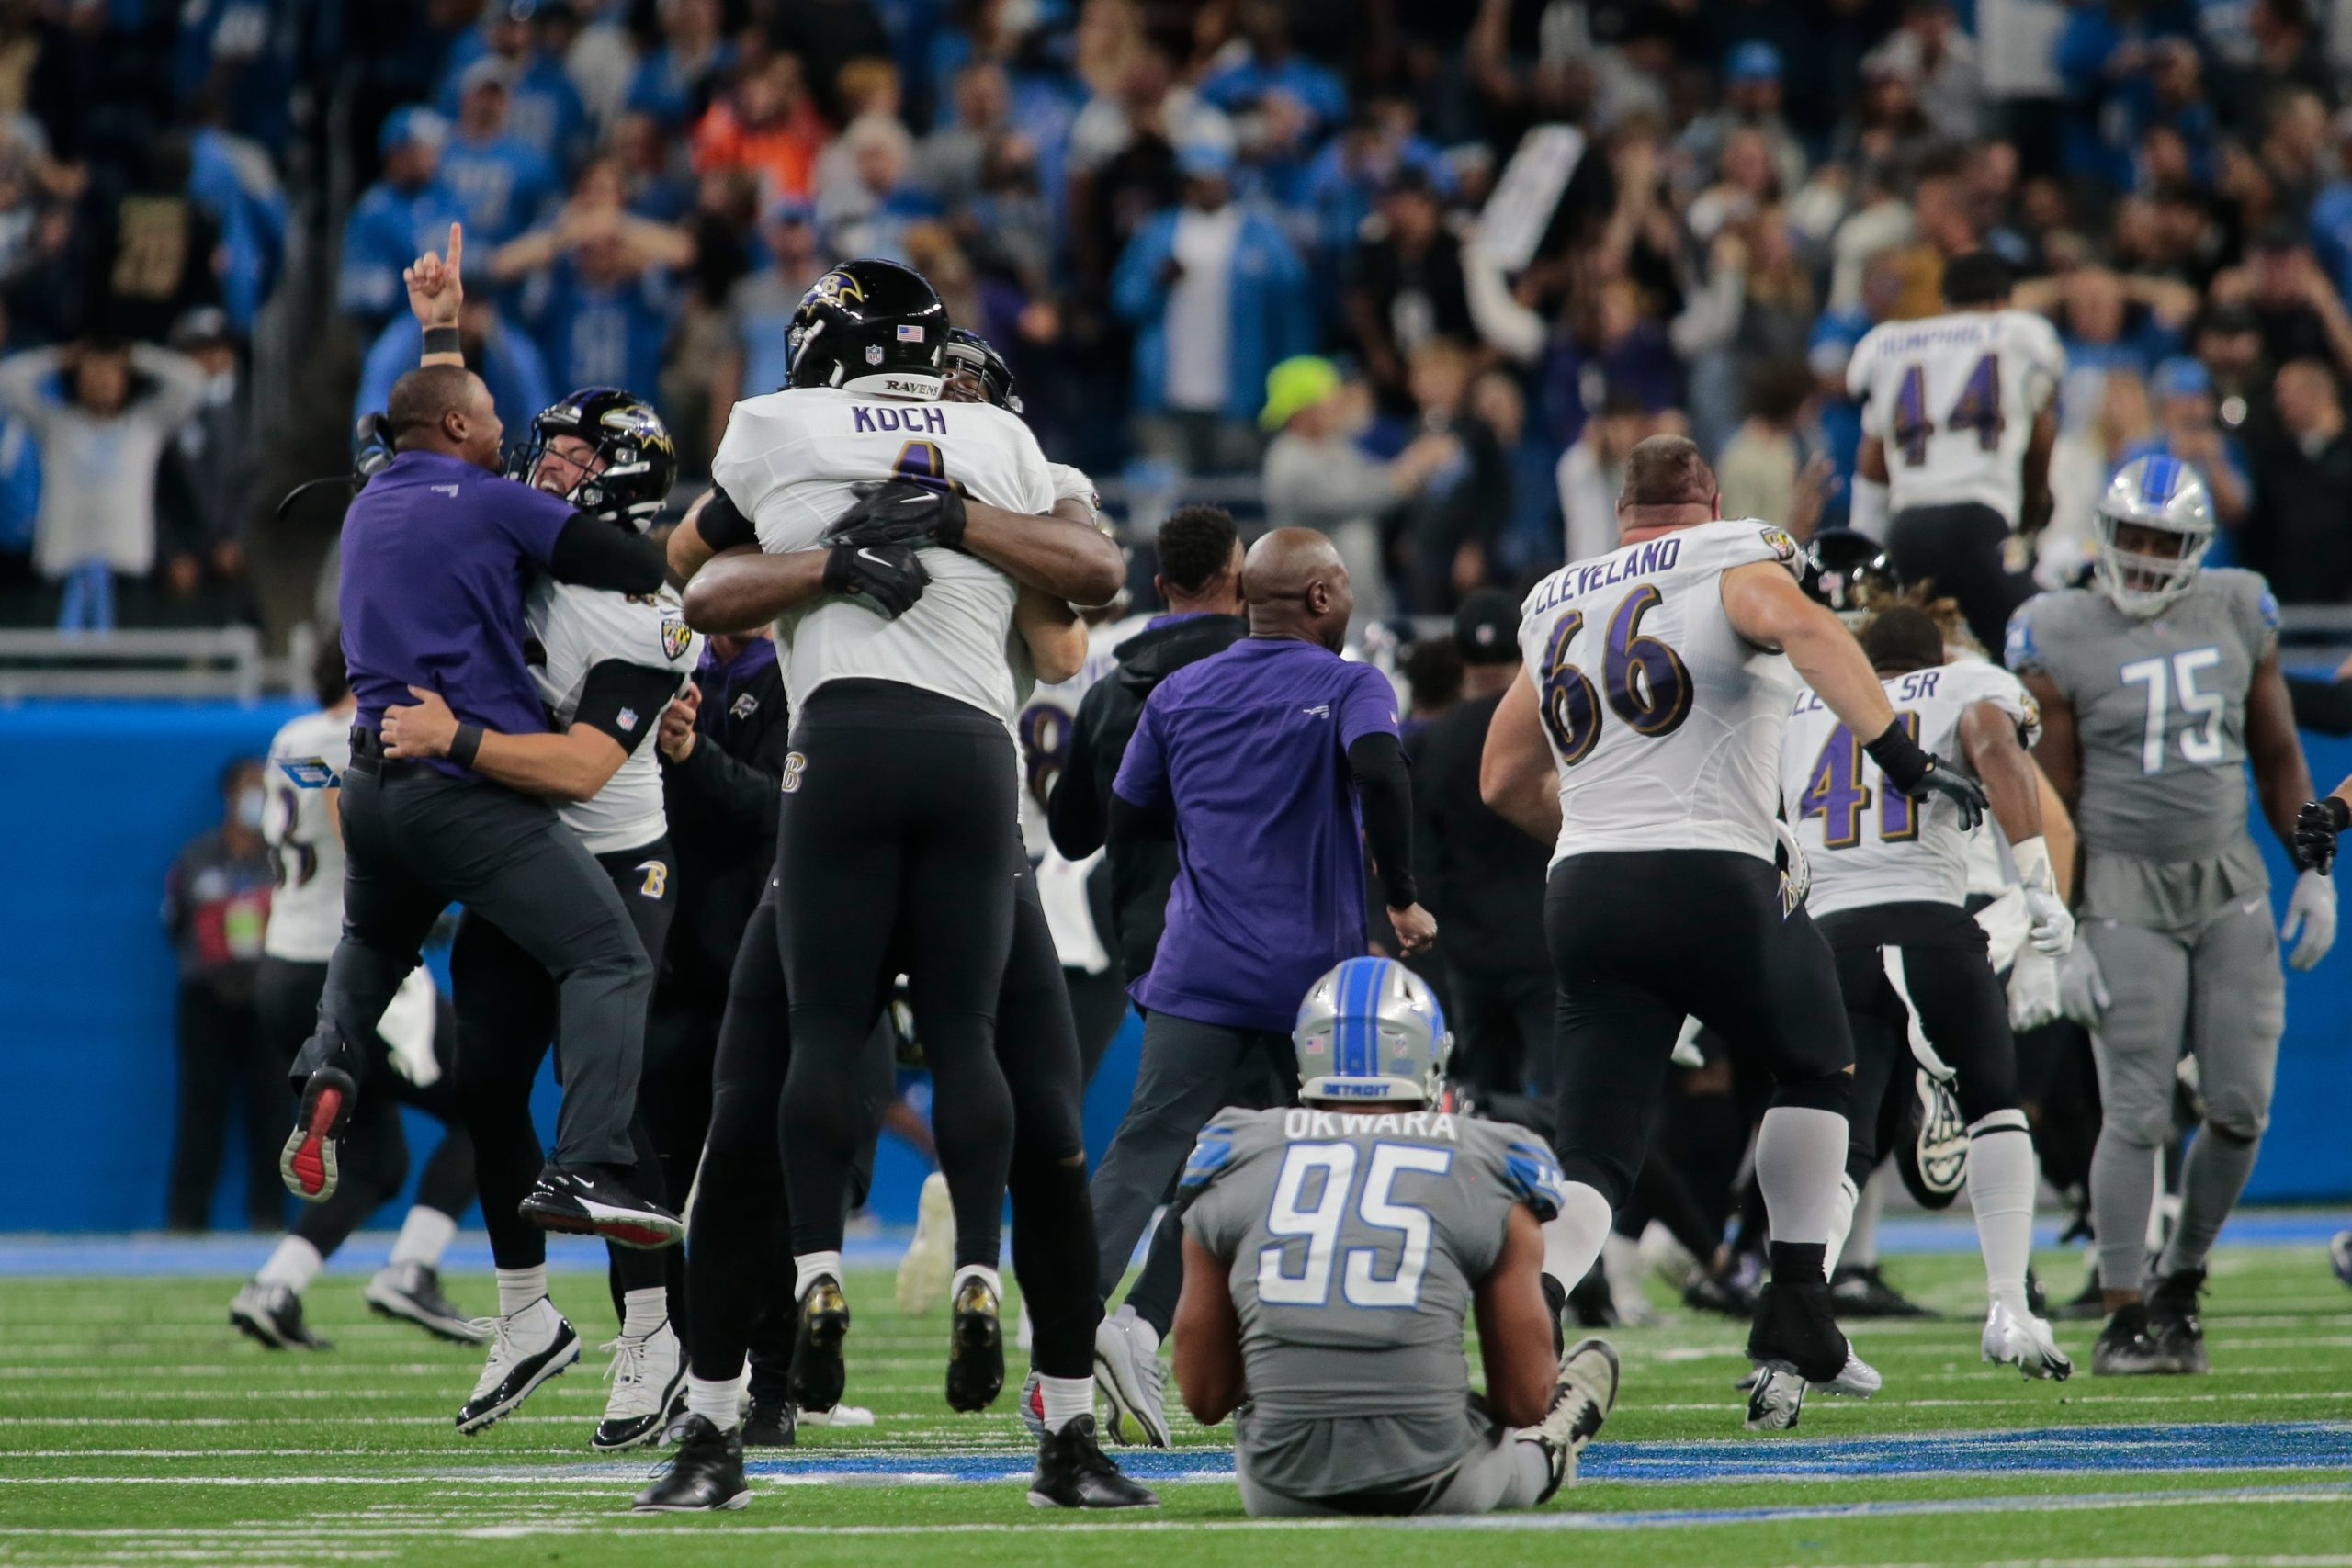 NFL Justin Tucker Record 66 yard Goal Leads Ravens to Wild Win!